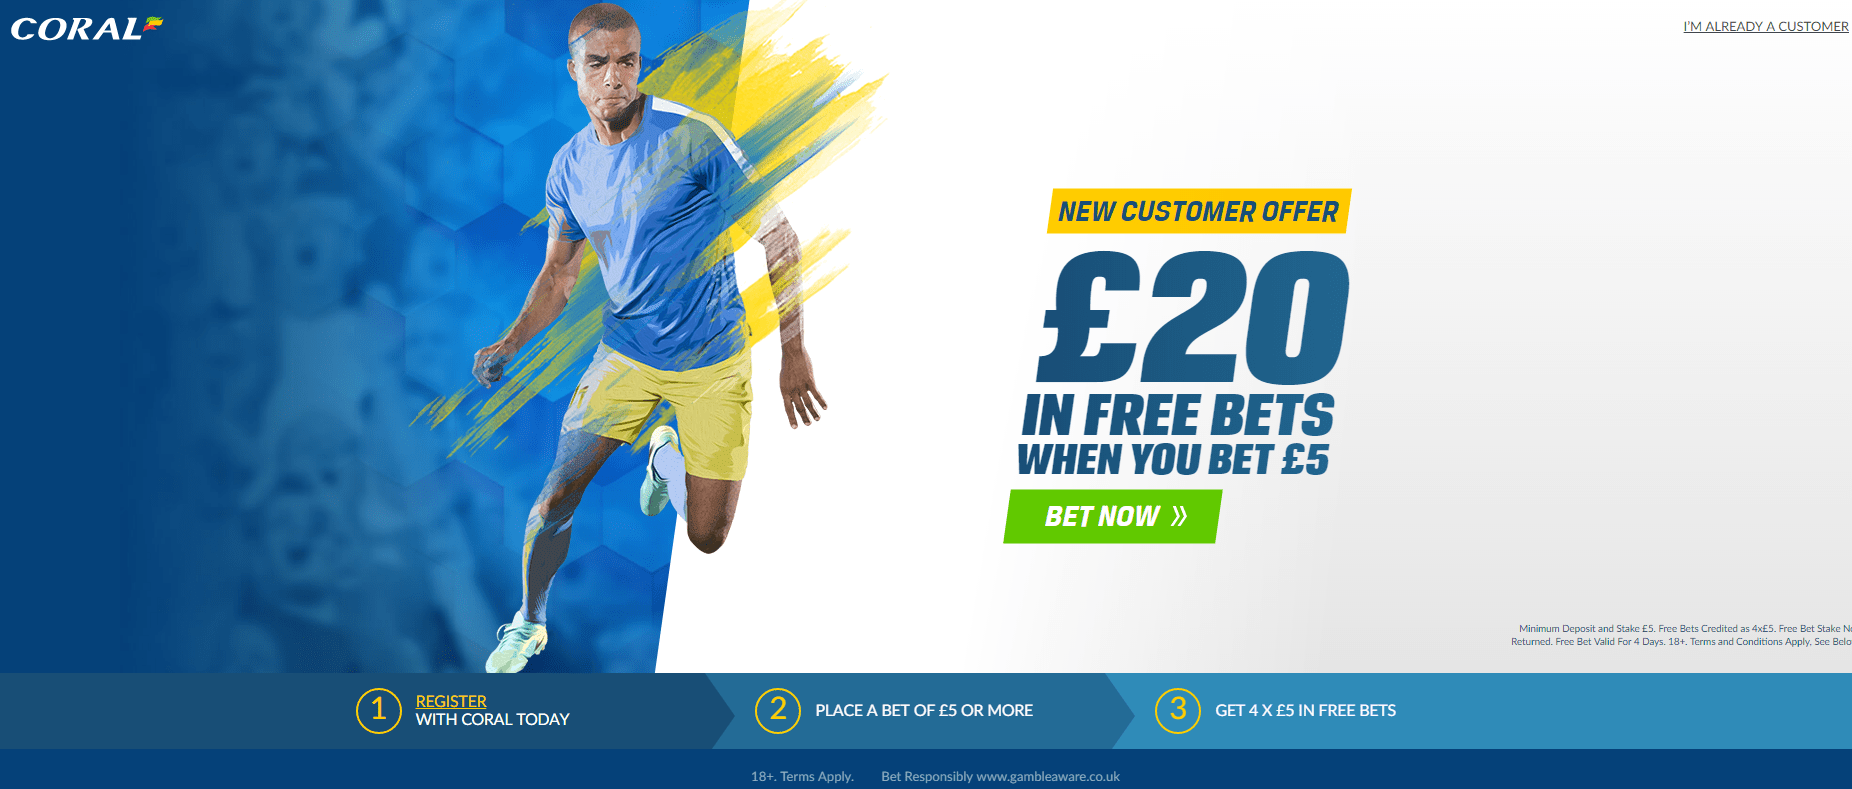 Matched Betting - Coral offer